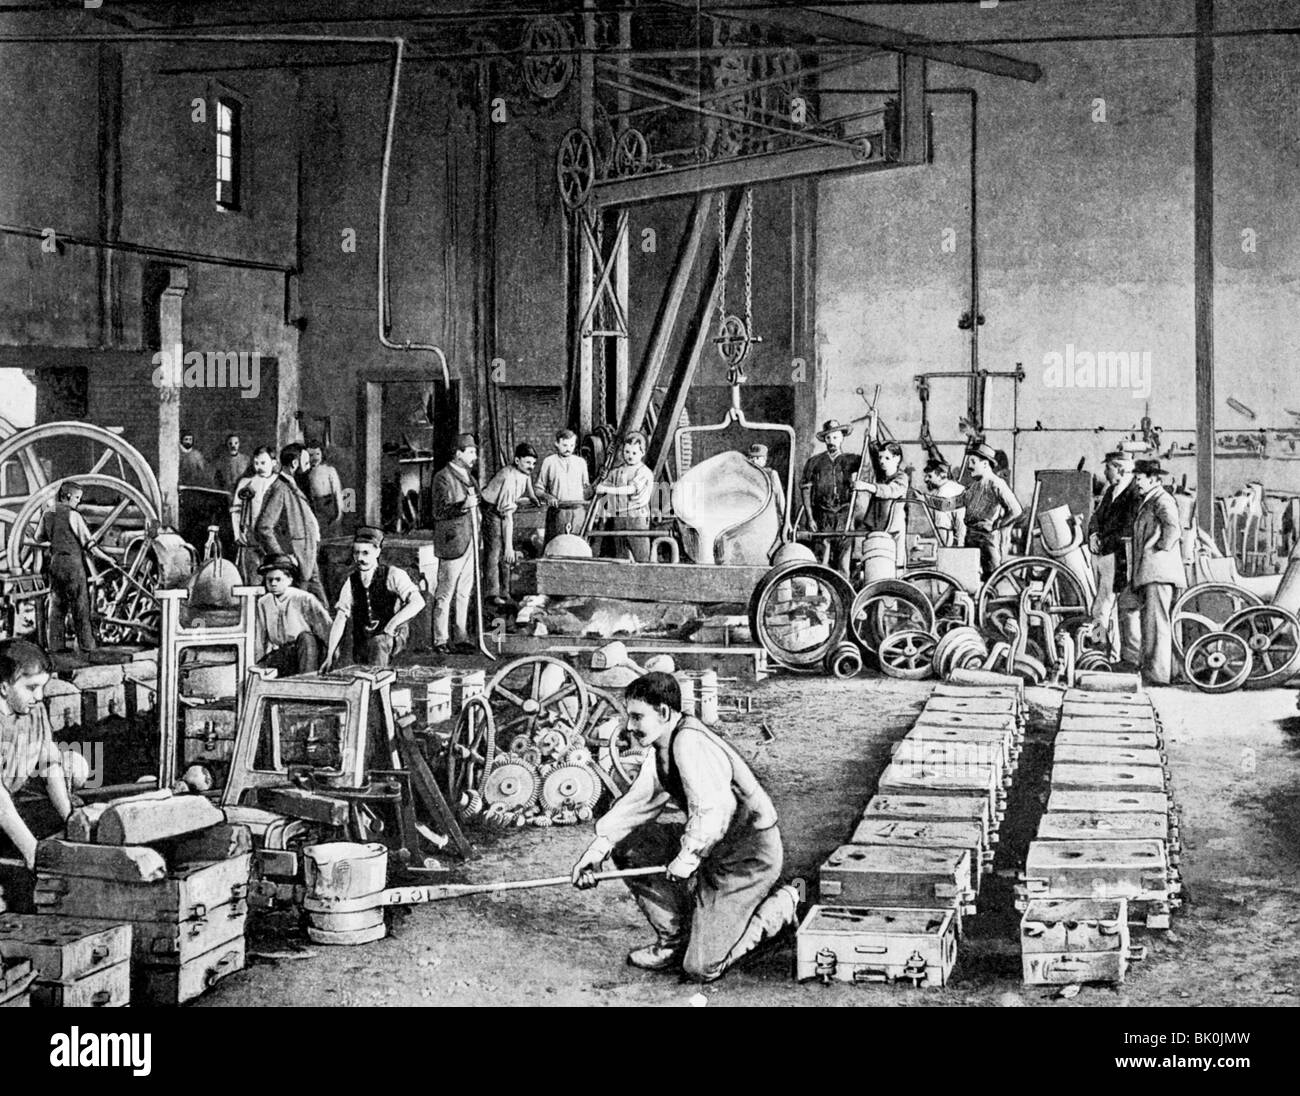 mechanical engineering history Mechanical engineering was one of the three engineering concentrations first offered at hopkins in the early 1900s since that time, the department's contributions to engineering education and.